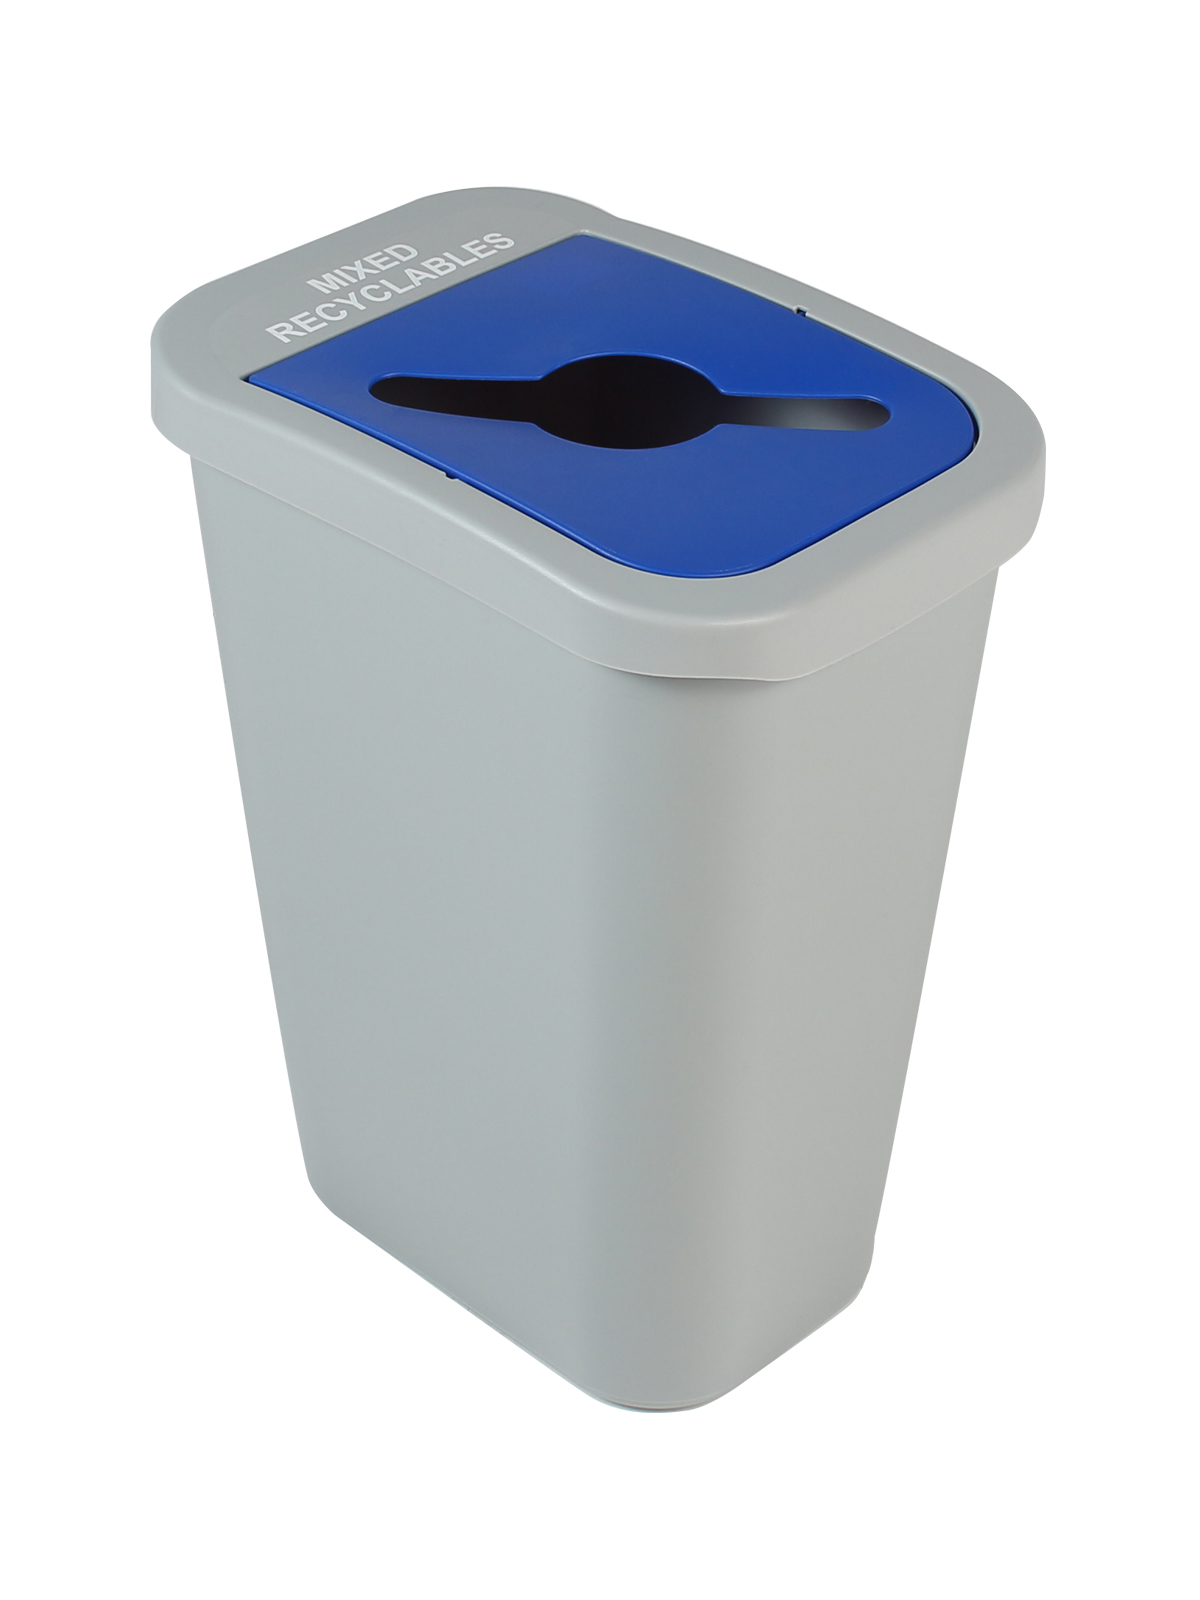 BILLI BOX - SINGLE 10 G - MIXED - GREY | BLUE - MIXED RECYCLABLES